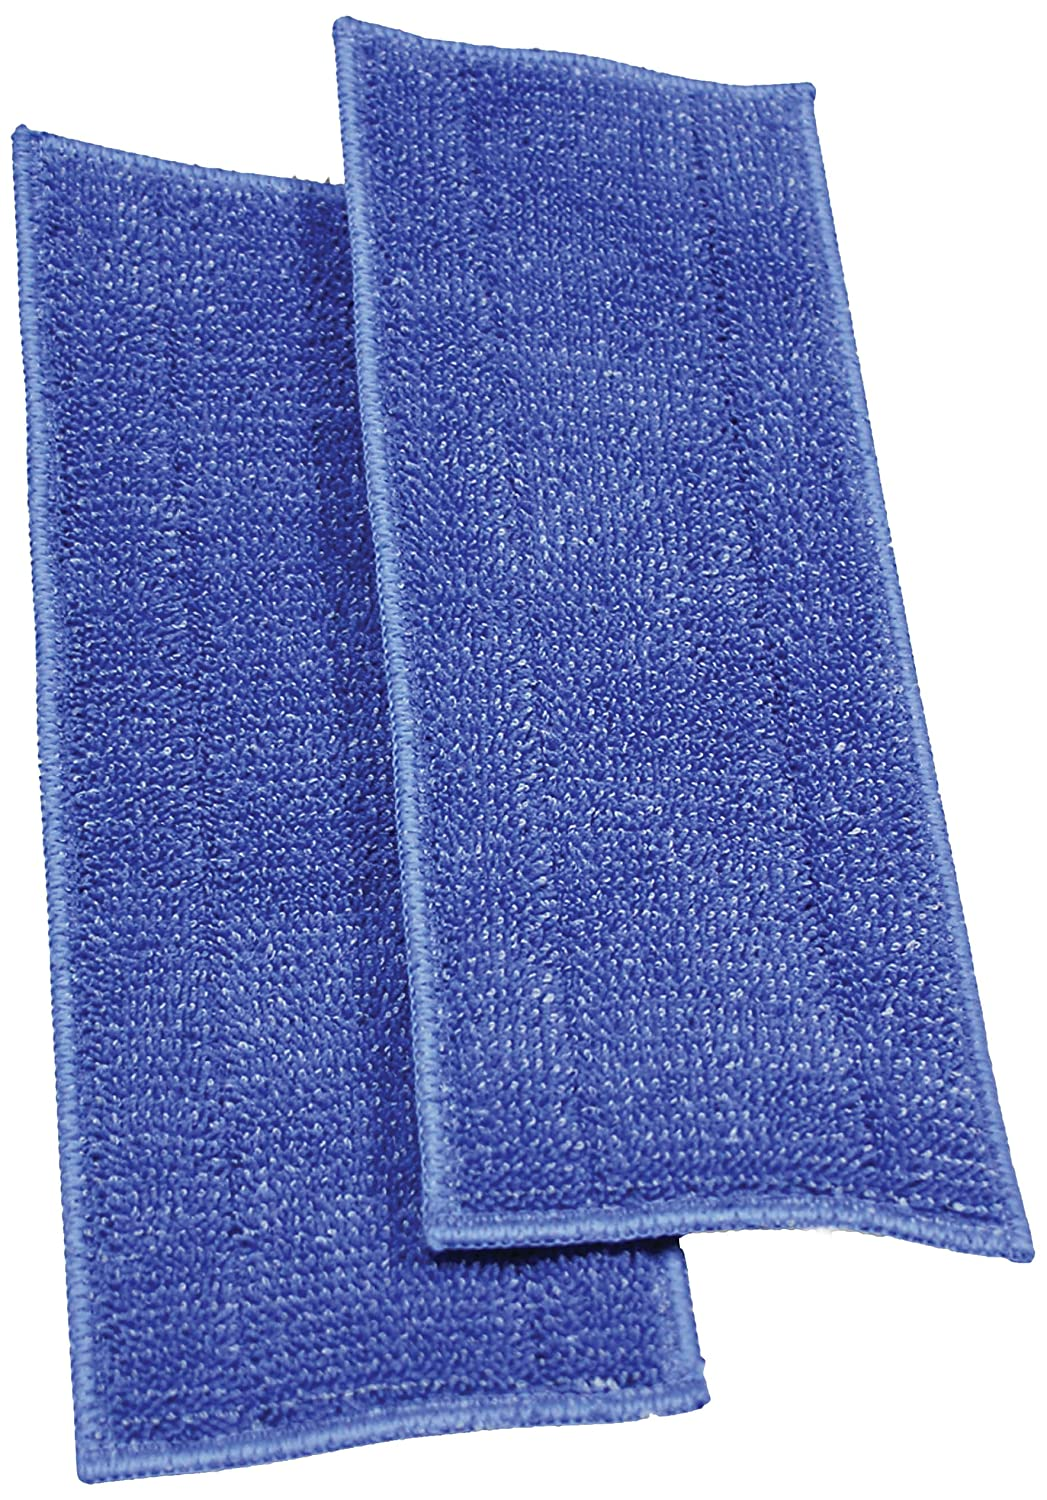 Haan Buffing Cloths for use with SS series steamers - 2 Pack RBC-2